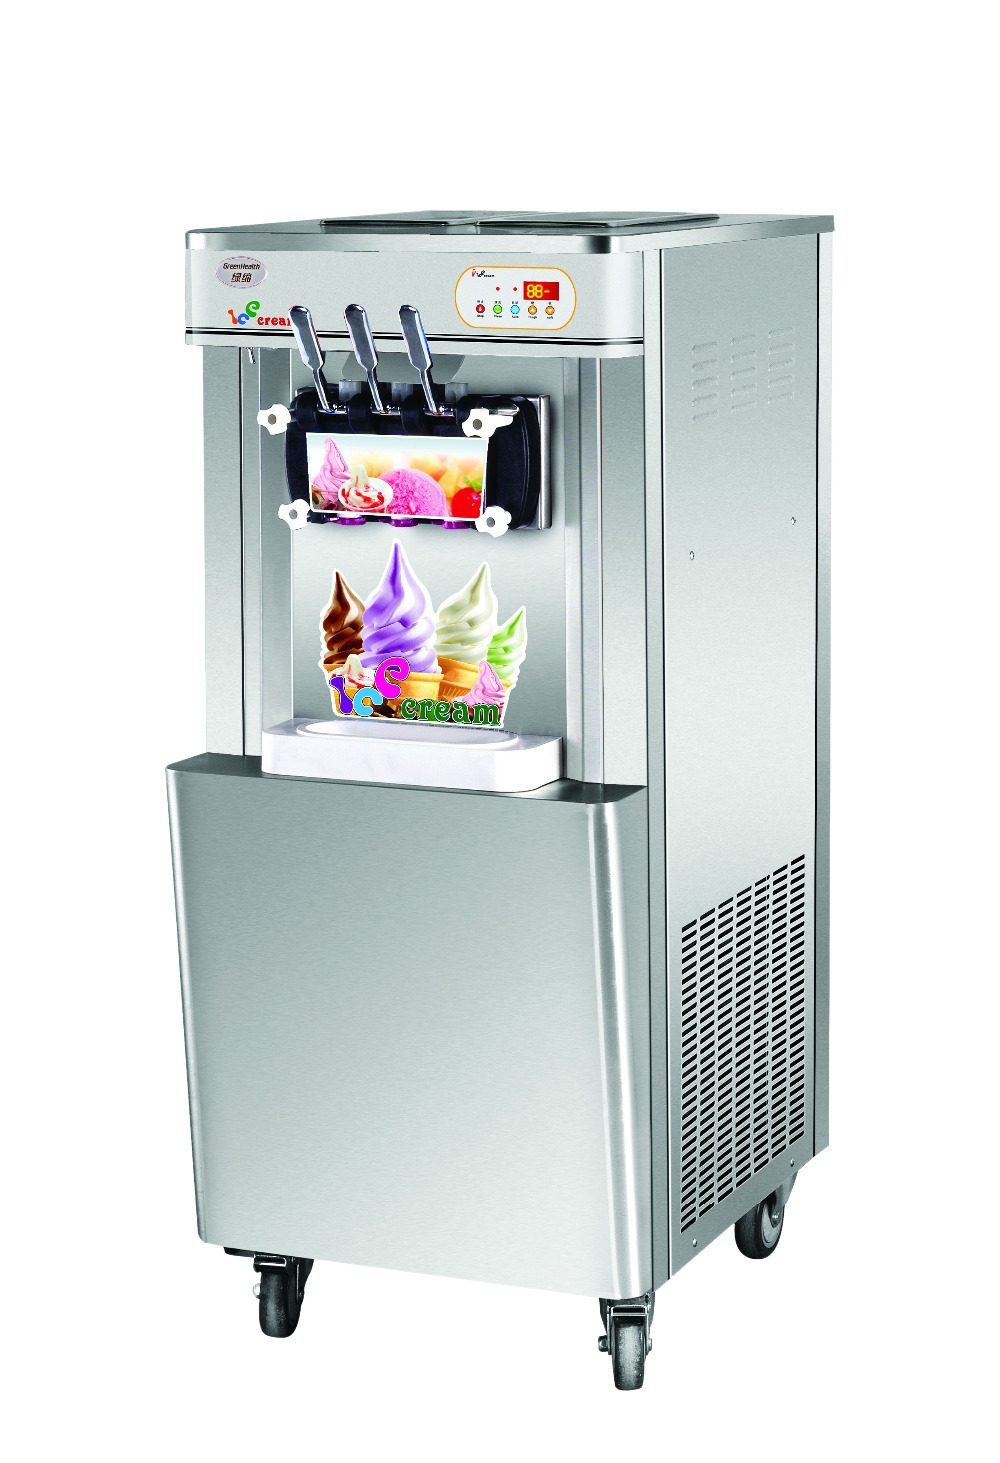 Super quality 25L free standing <font><b>Ice</b></font> cream making machine commercial soft <font><b>ice</b></font> cream <font><b>maker</b></font> with rainbow system and moving wheel